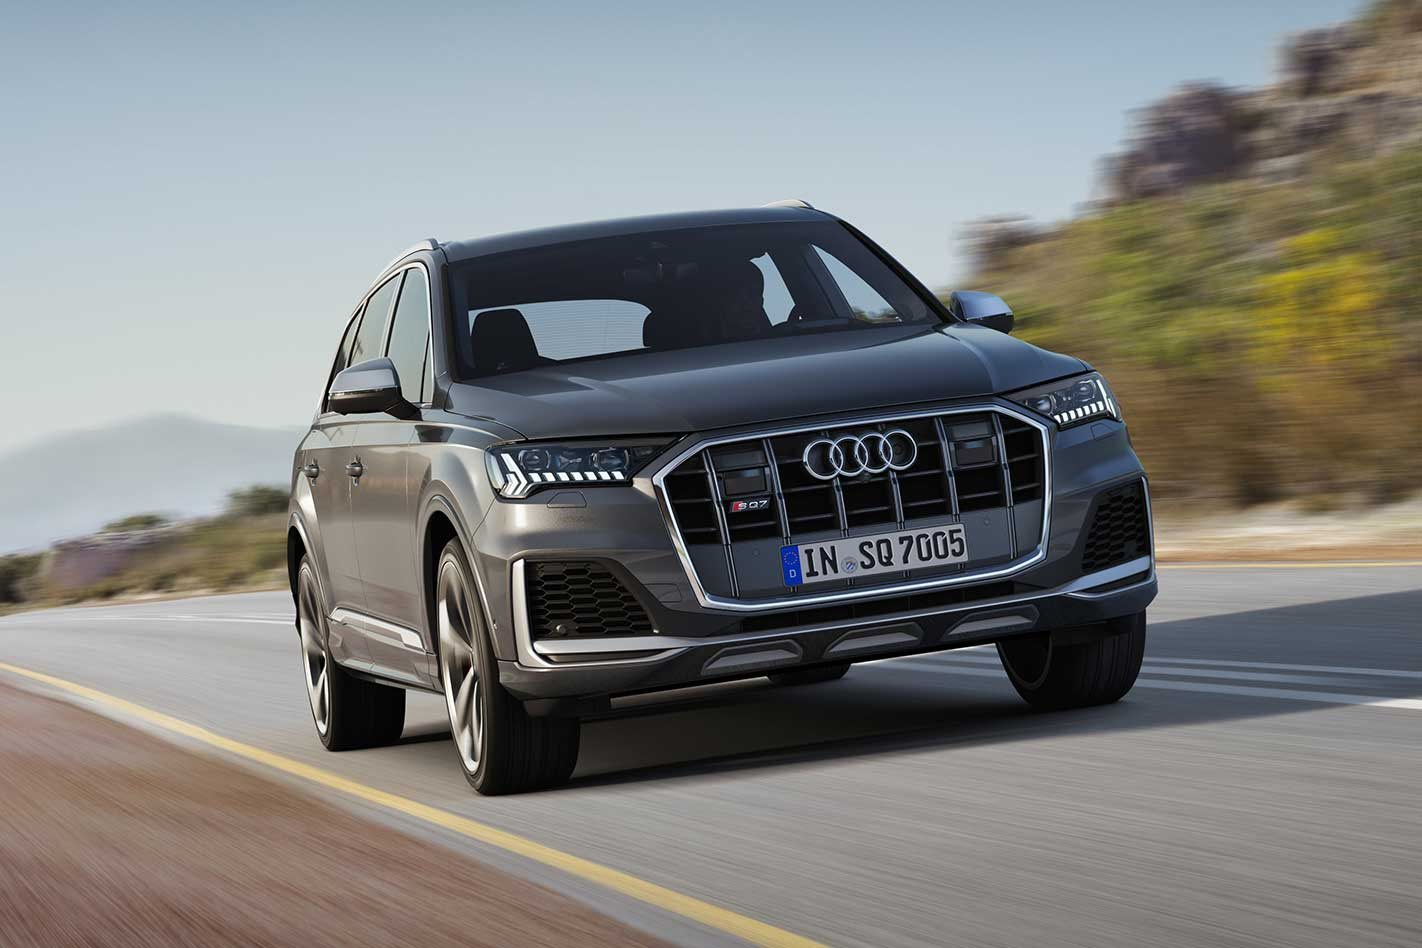 2018 Audi SQ7 TDI: Specs, Design, Price >> Updated 2020 Audi Sq7 Tdi Revealed